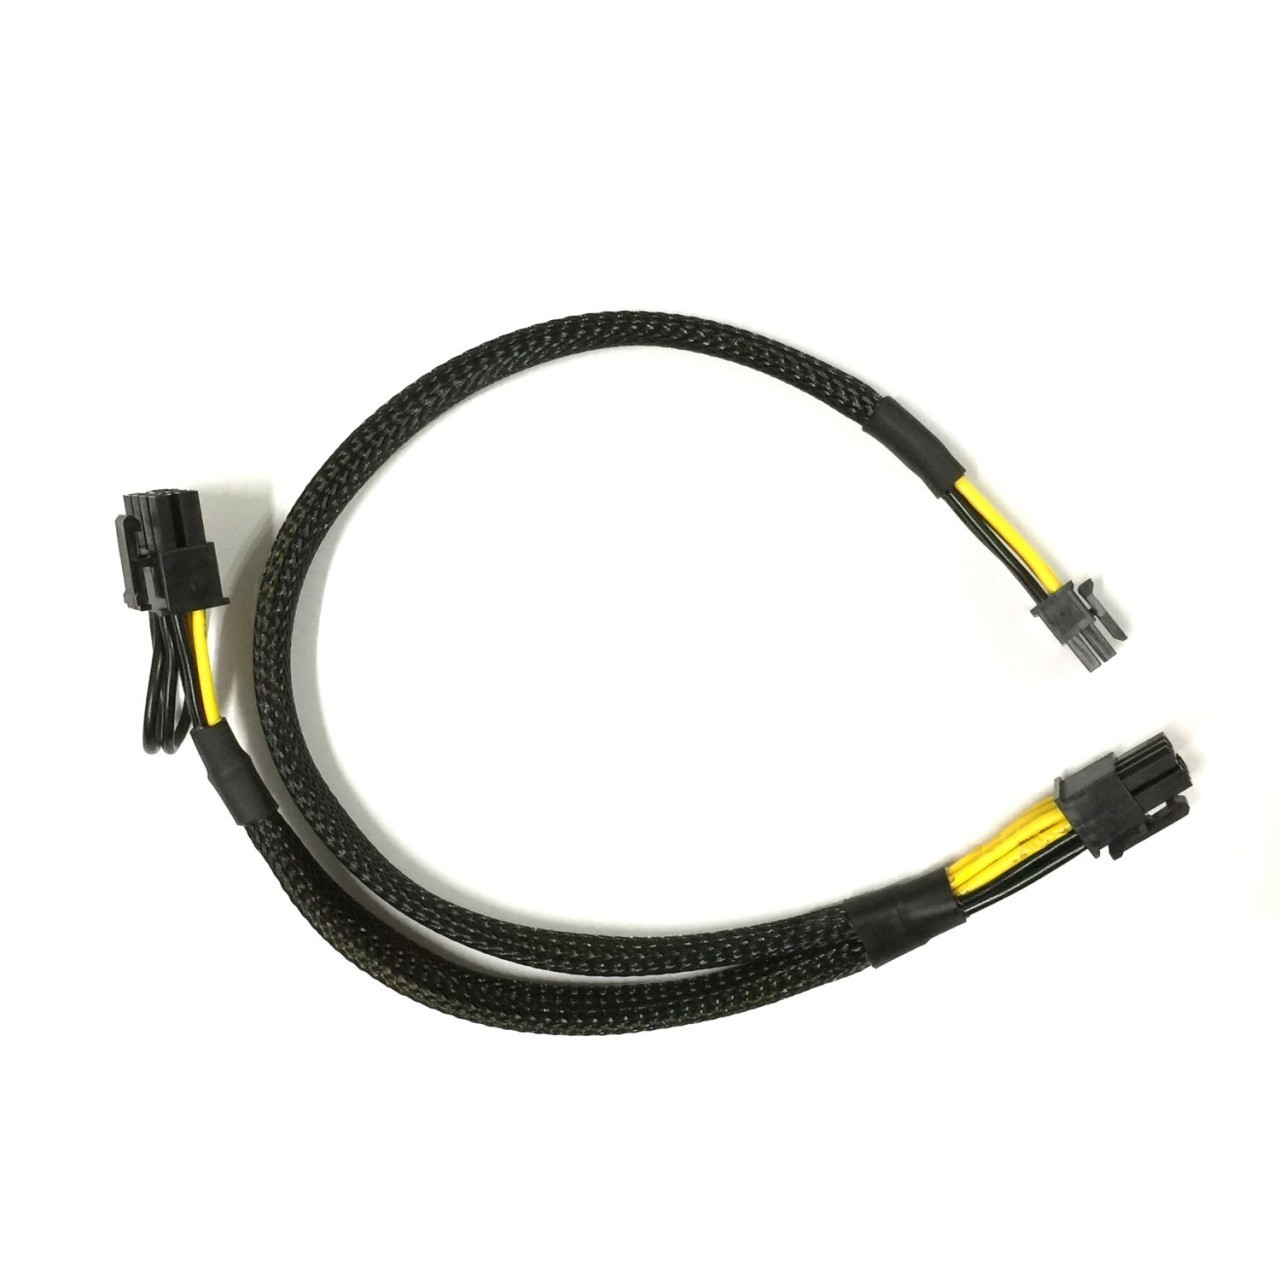 HP DL380 G10 8-pin Cable Kit  871828-B21